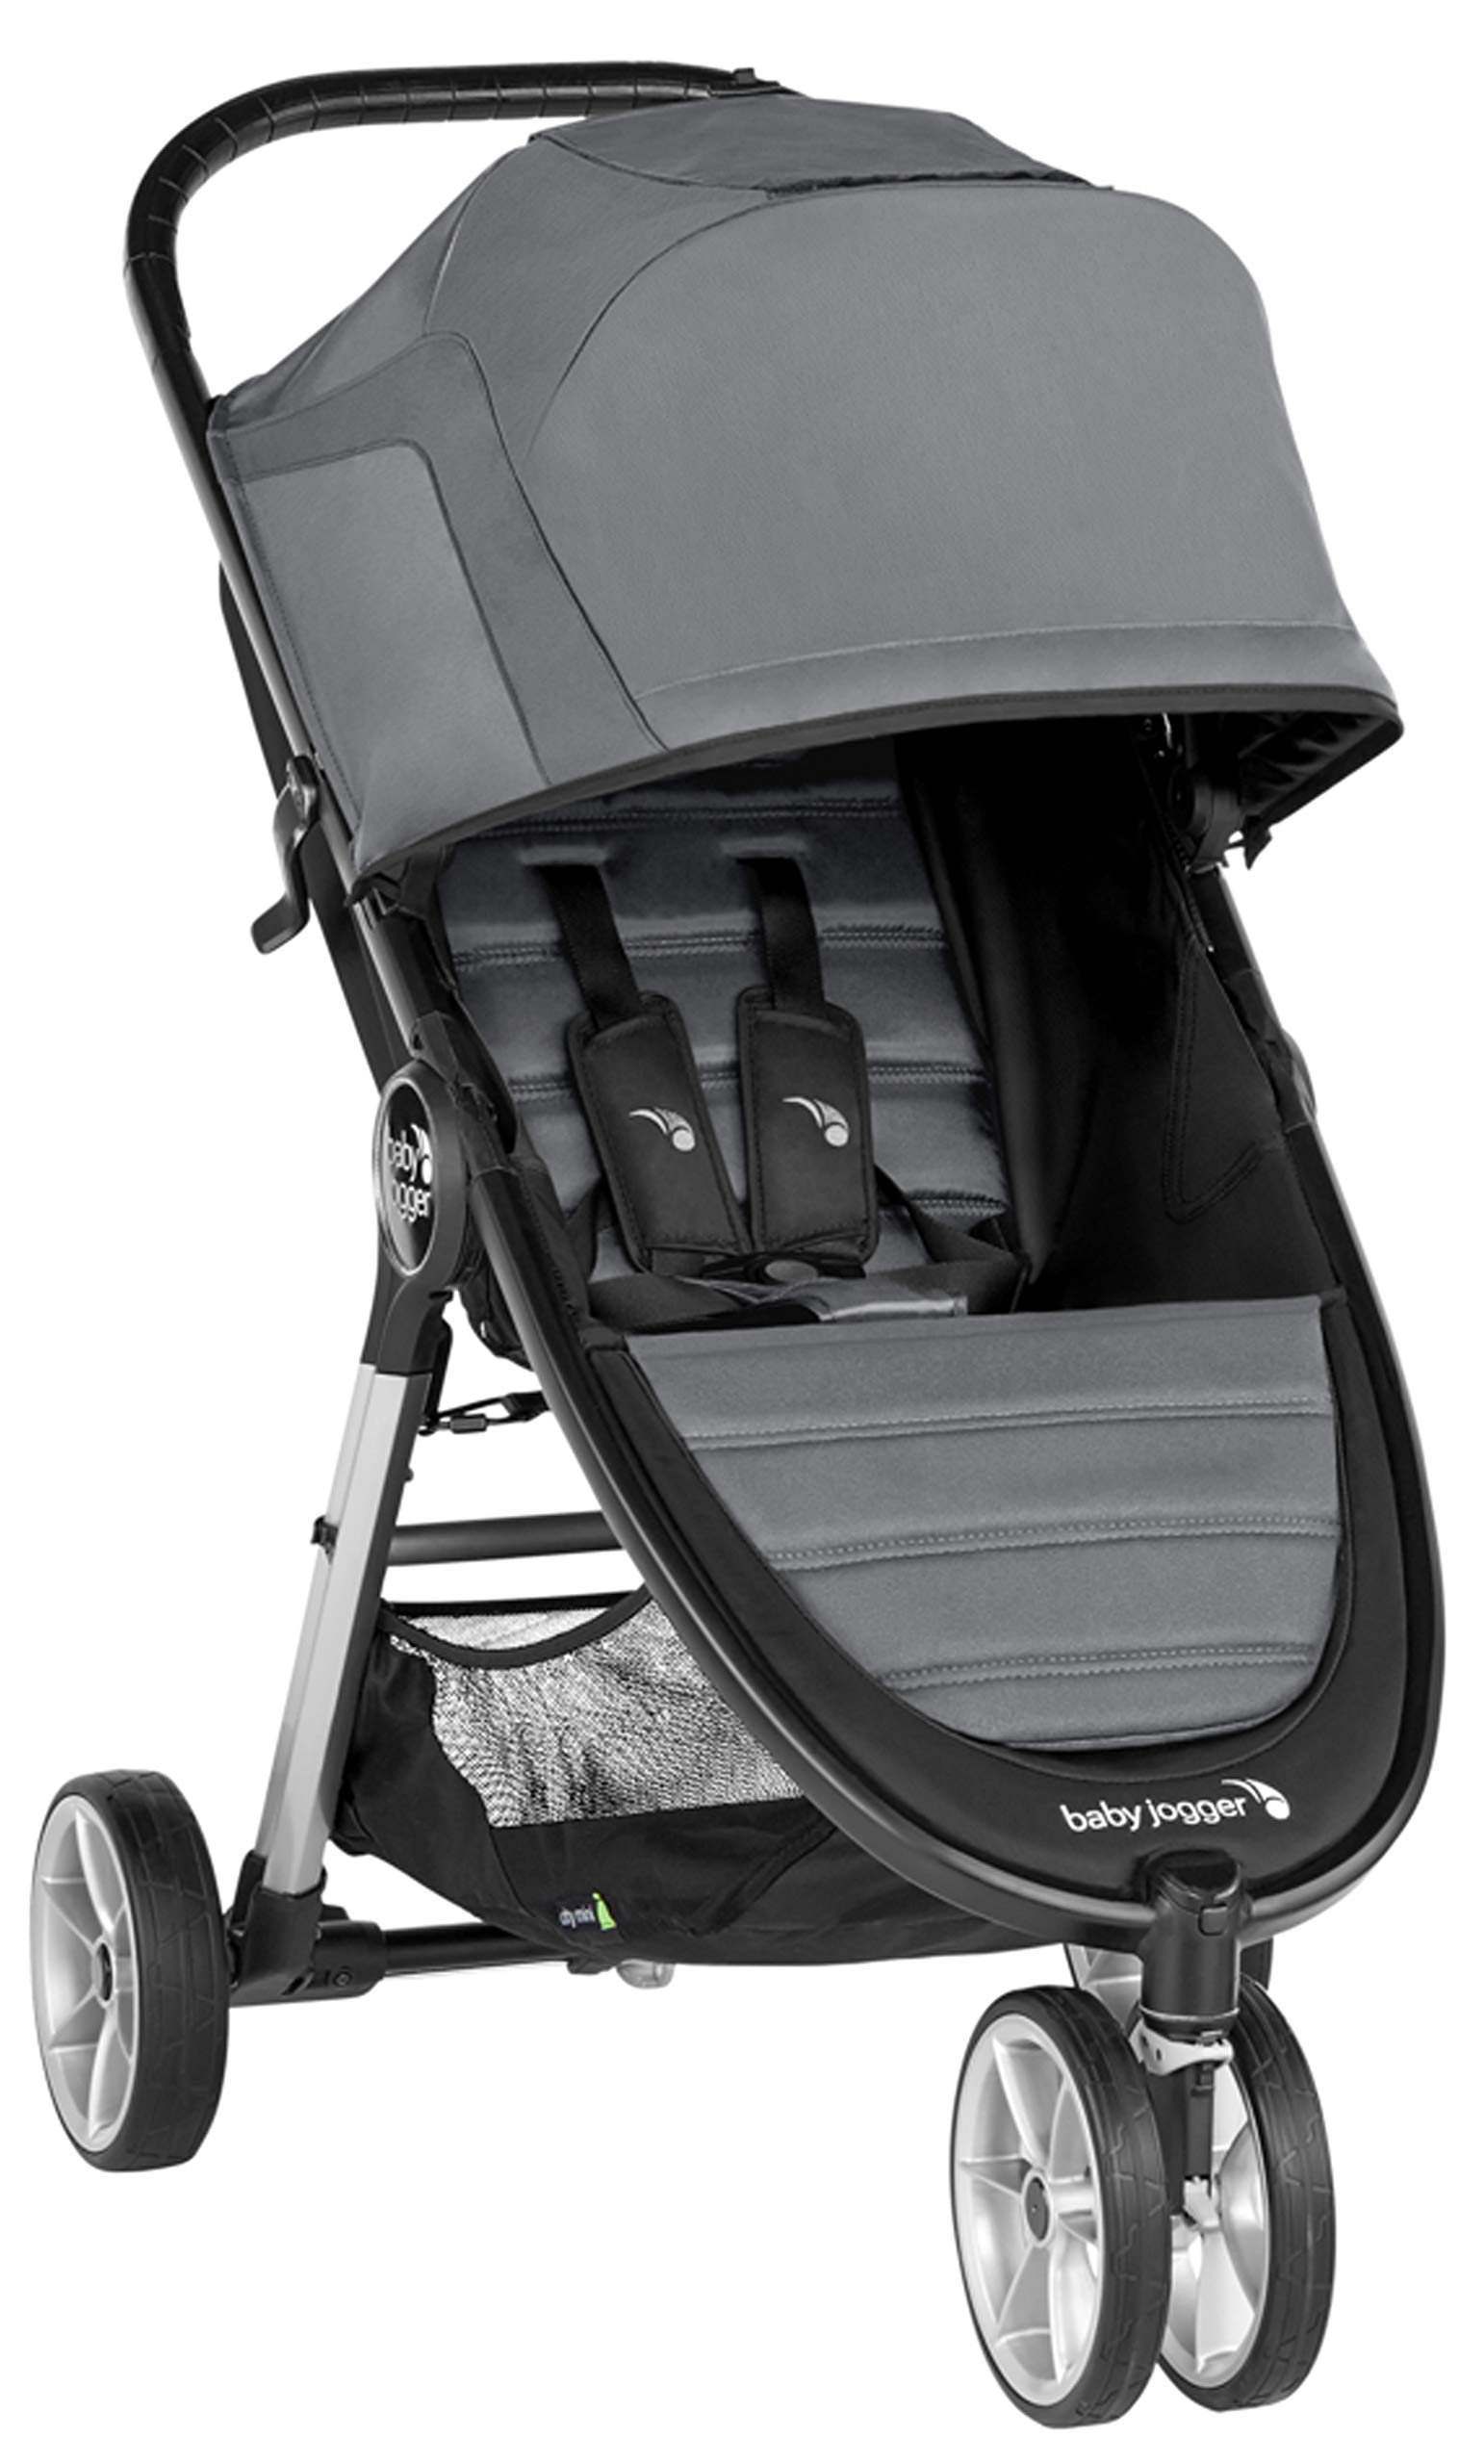 baby jogger City Mini 2 Single Stroller Slate Baby Jogger The baby jogger city mini 2 has an all new lightweight and compact design with the signature one-hand compact fold, with an auto-lock it's remarkably nimble and ready for adventure Lift a strap with one hand and the city mini 2 folds itself: simply and compactly. The auto-lock will lock the fold for transportation or storage The seat, with an adjustable calf support and near-flat recline, holds a child weighing up to 22kg and includes a 5-point stroller harness to keep them comfortable and safely secured 1